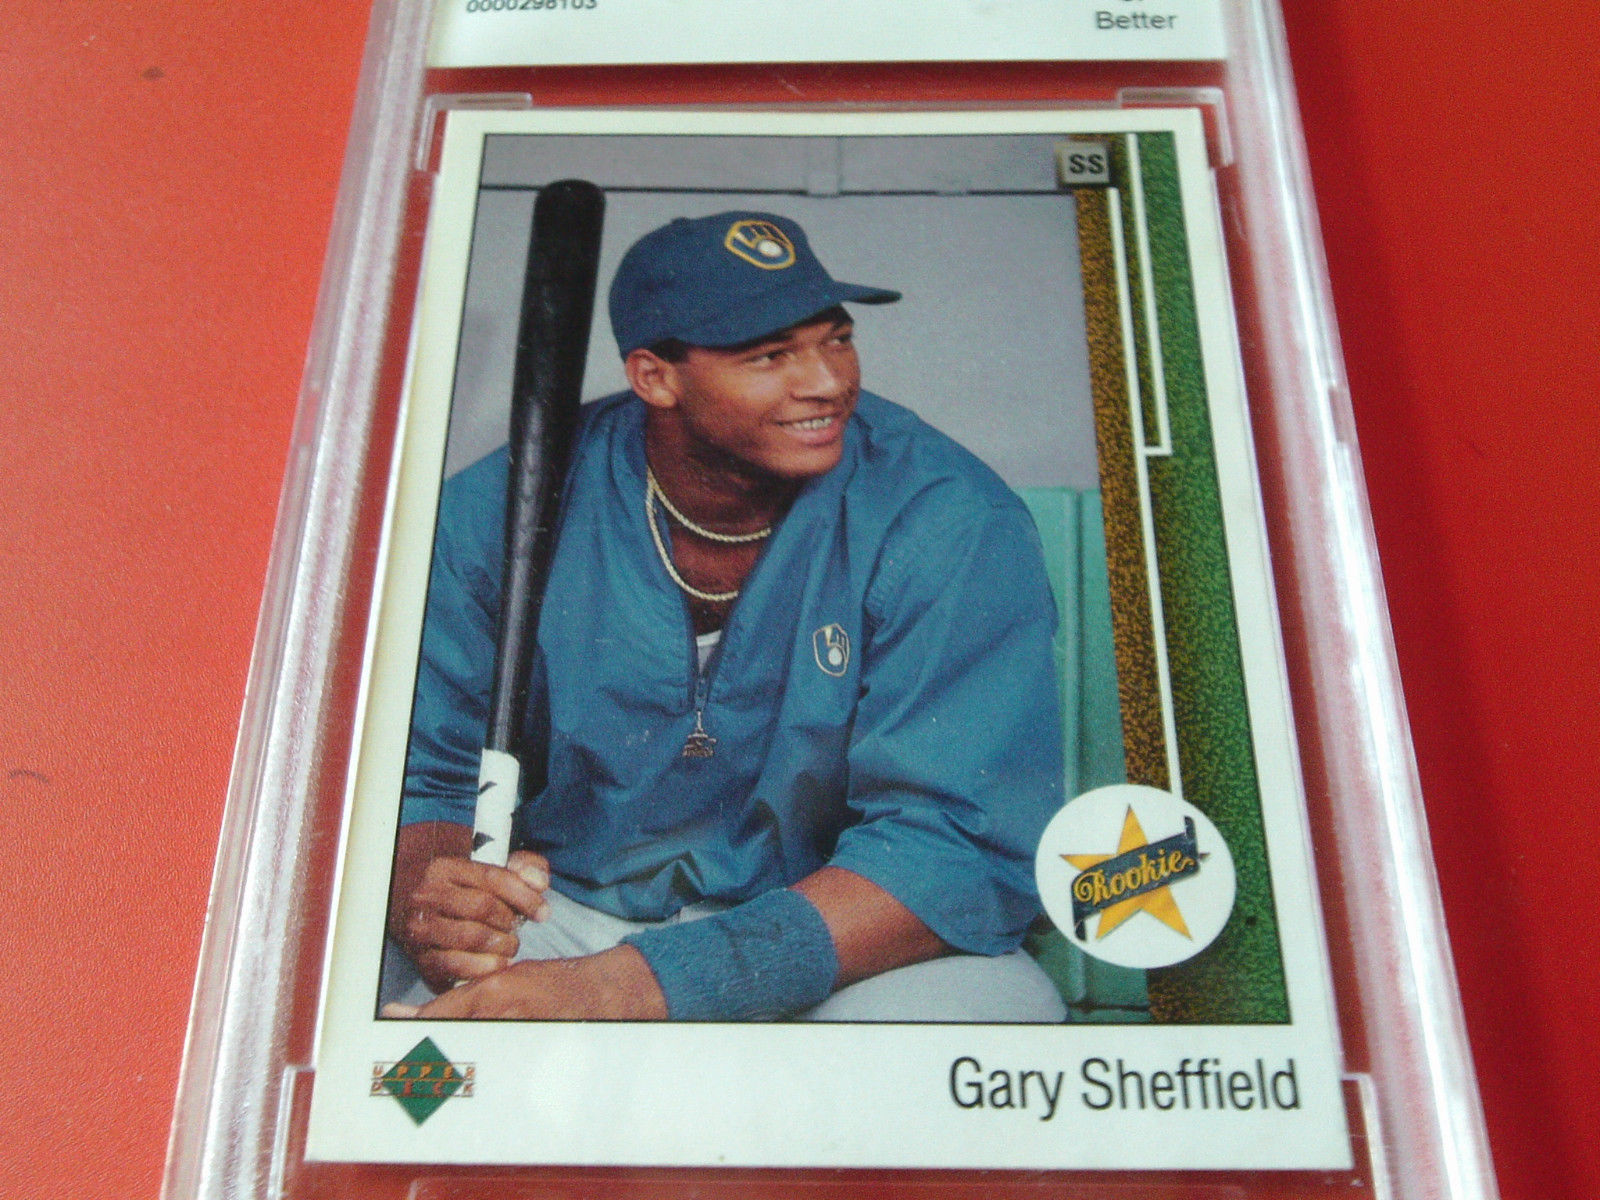 1989  UPPER  DECK  #13   GARY  SHEFFIELD   ROOKIE   BCCG  9   !!